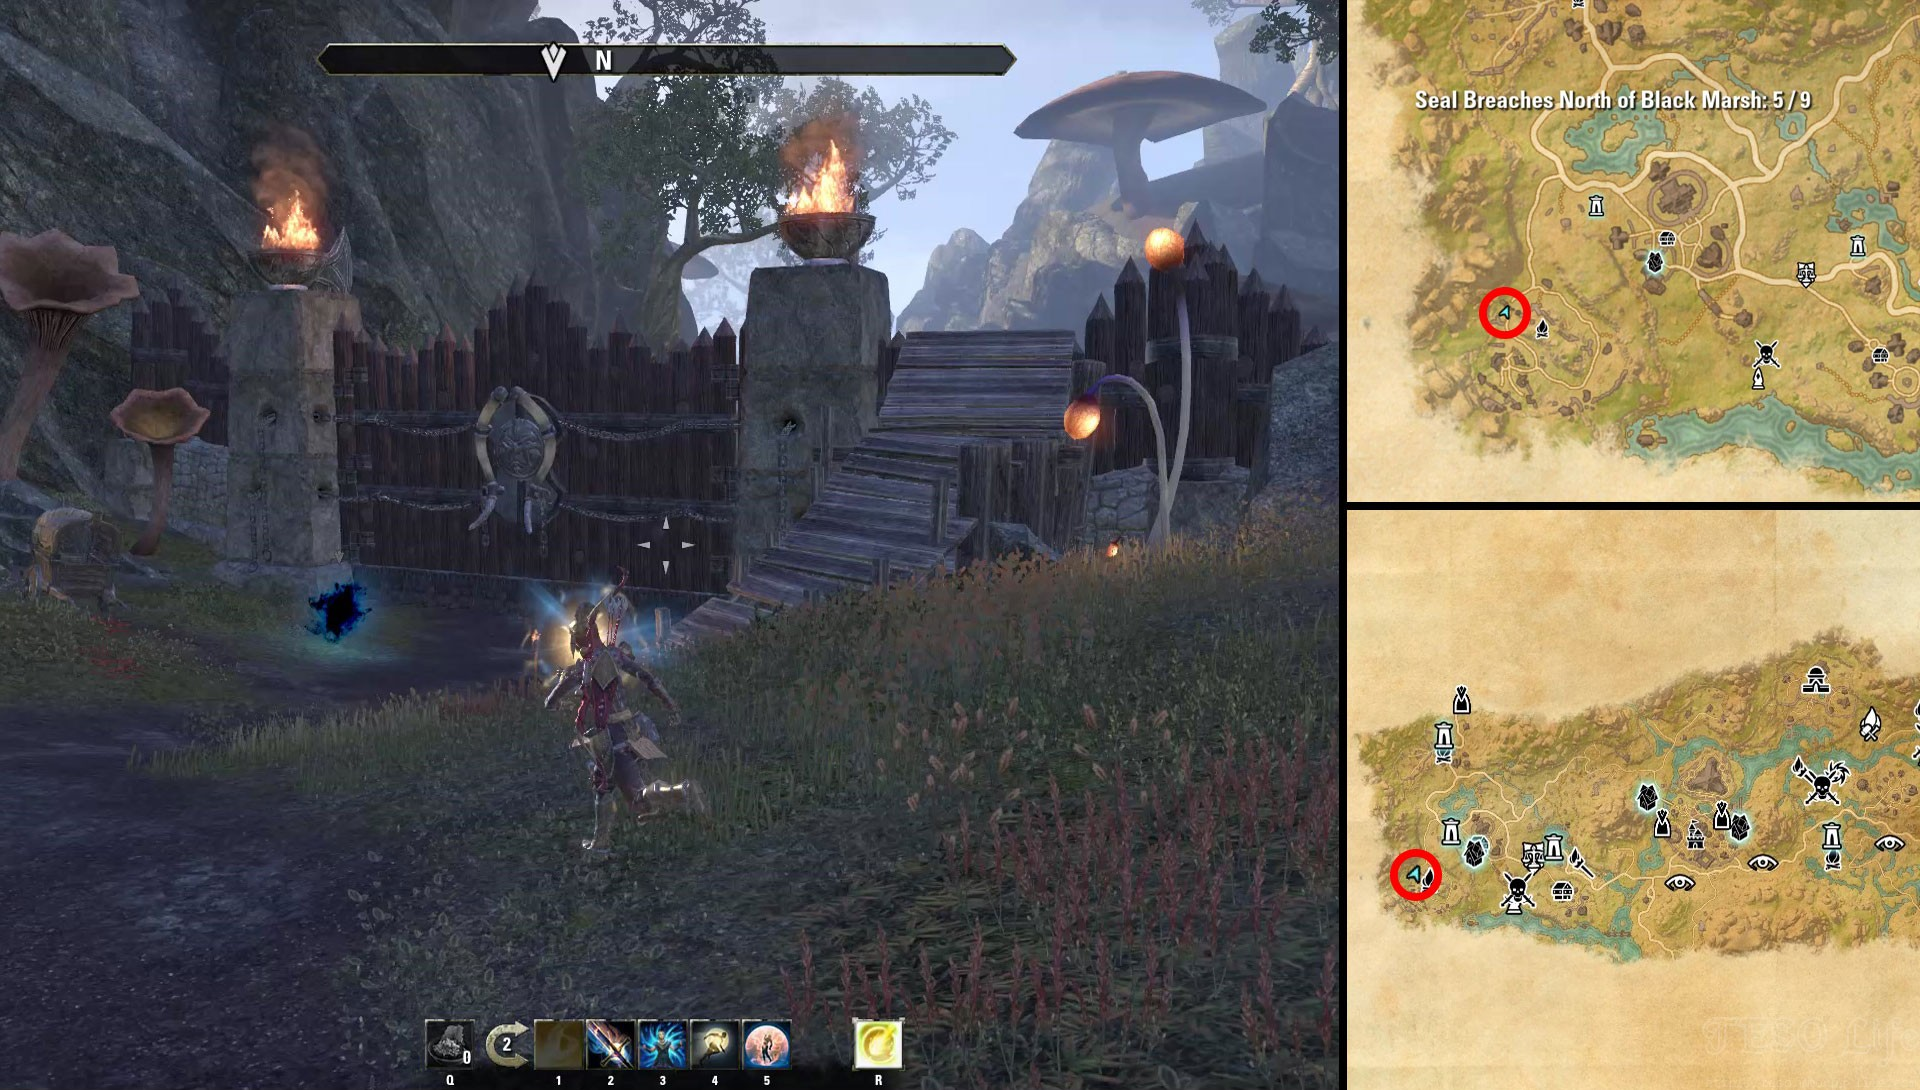 ESO Psijic Map of Black Marsh Time Breach Locations